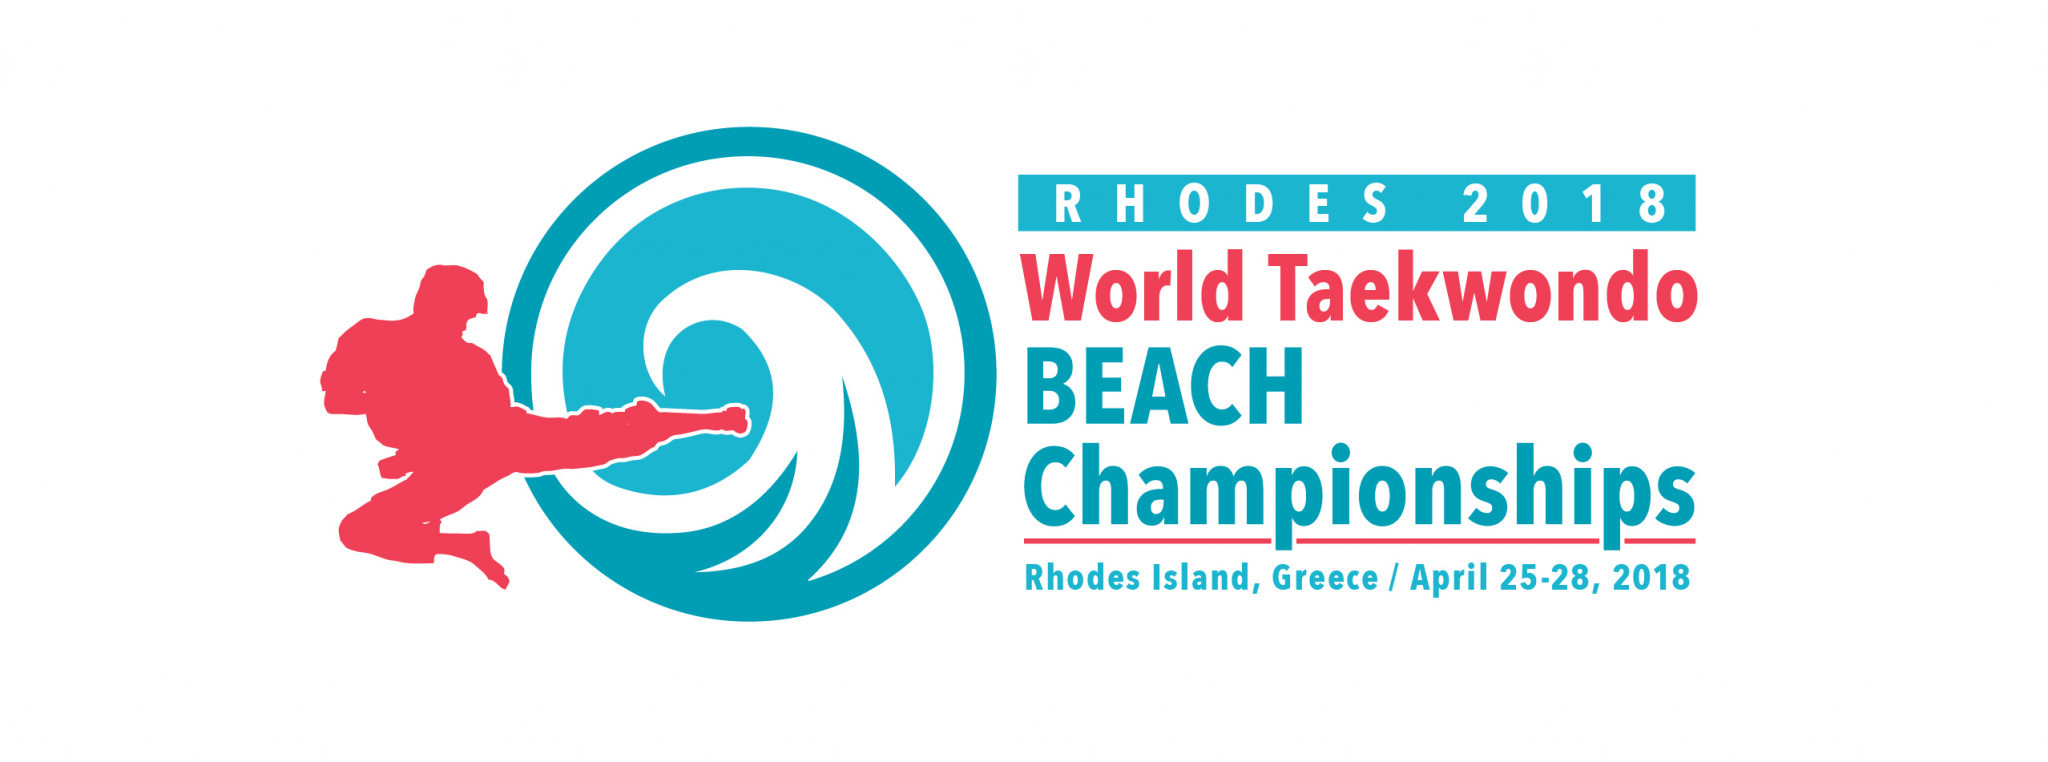 Organisers confirm venue and reveal logo for 2018 World Taekwondo Beach Championships in Rhodes